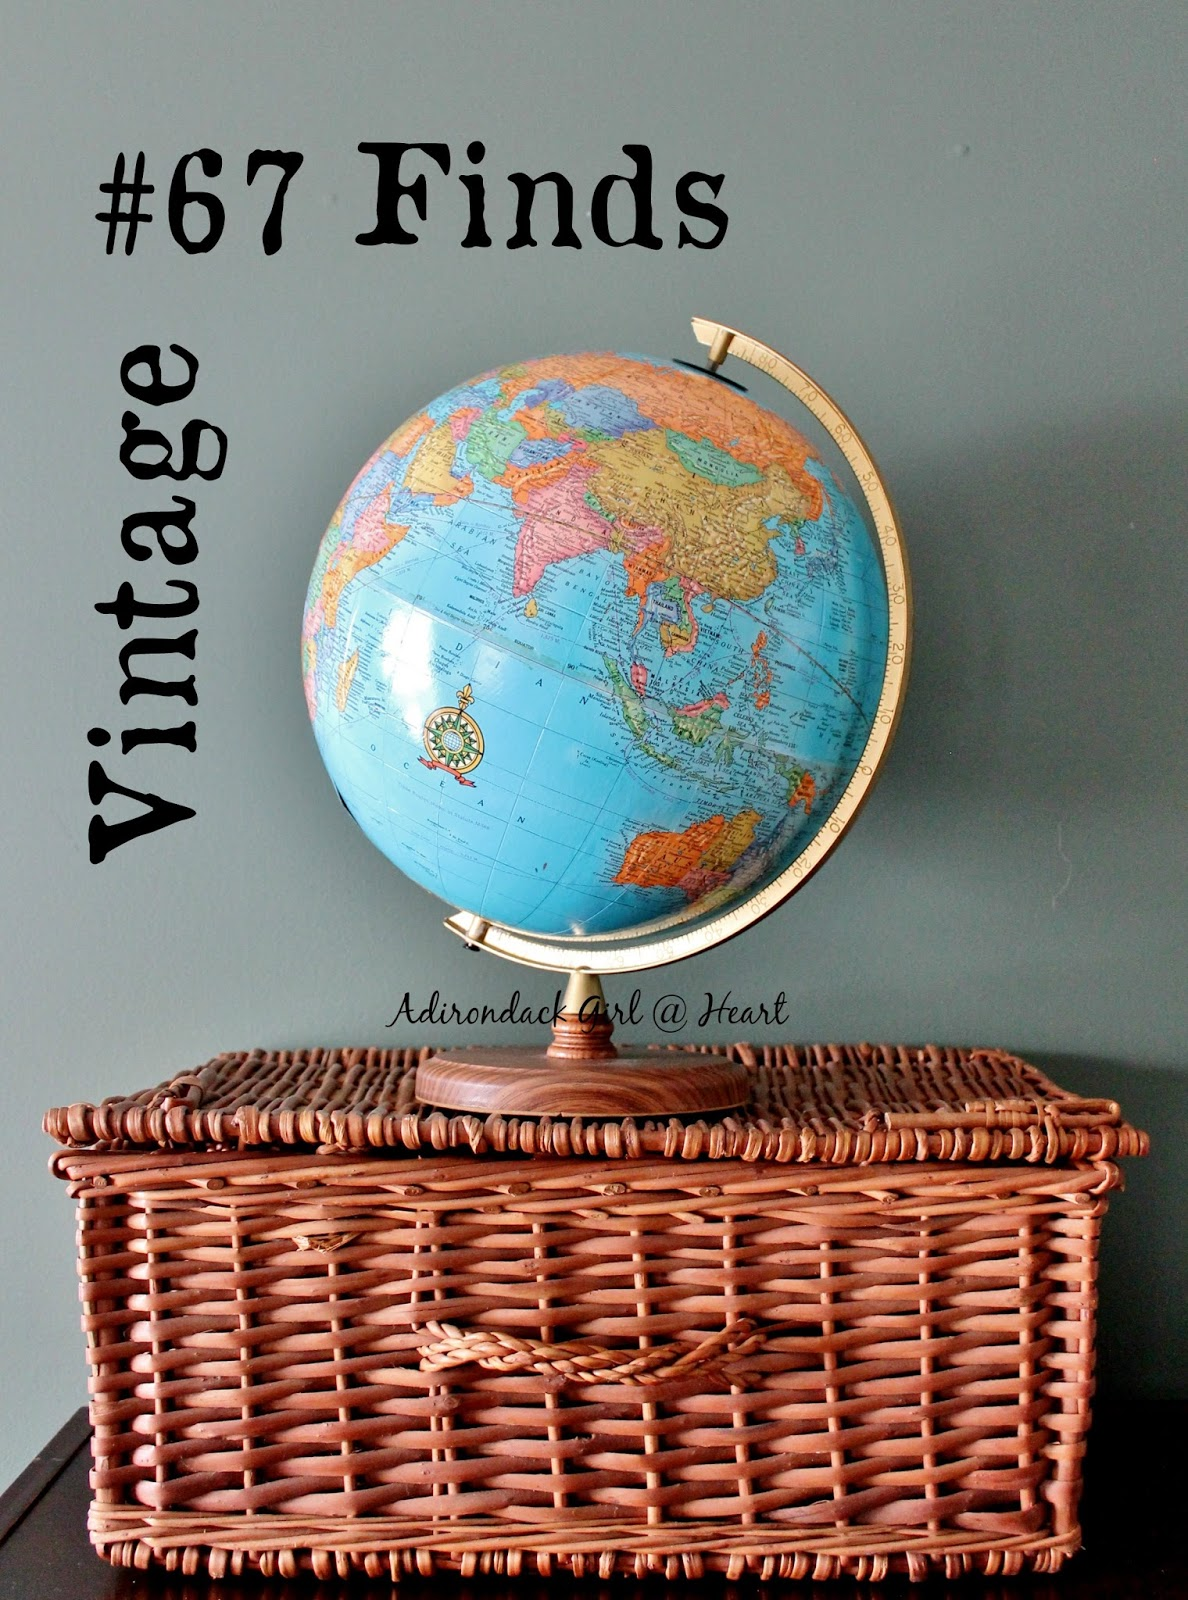 This Week's Vintage Finds #67